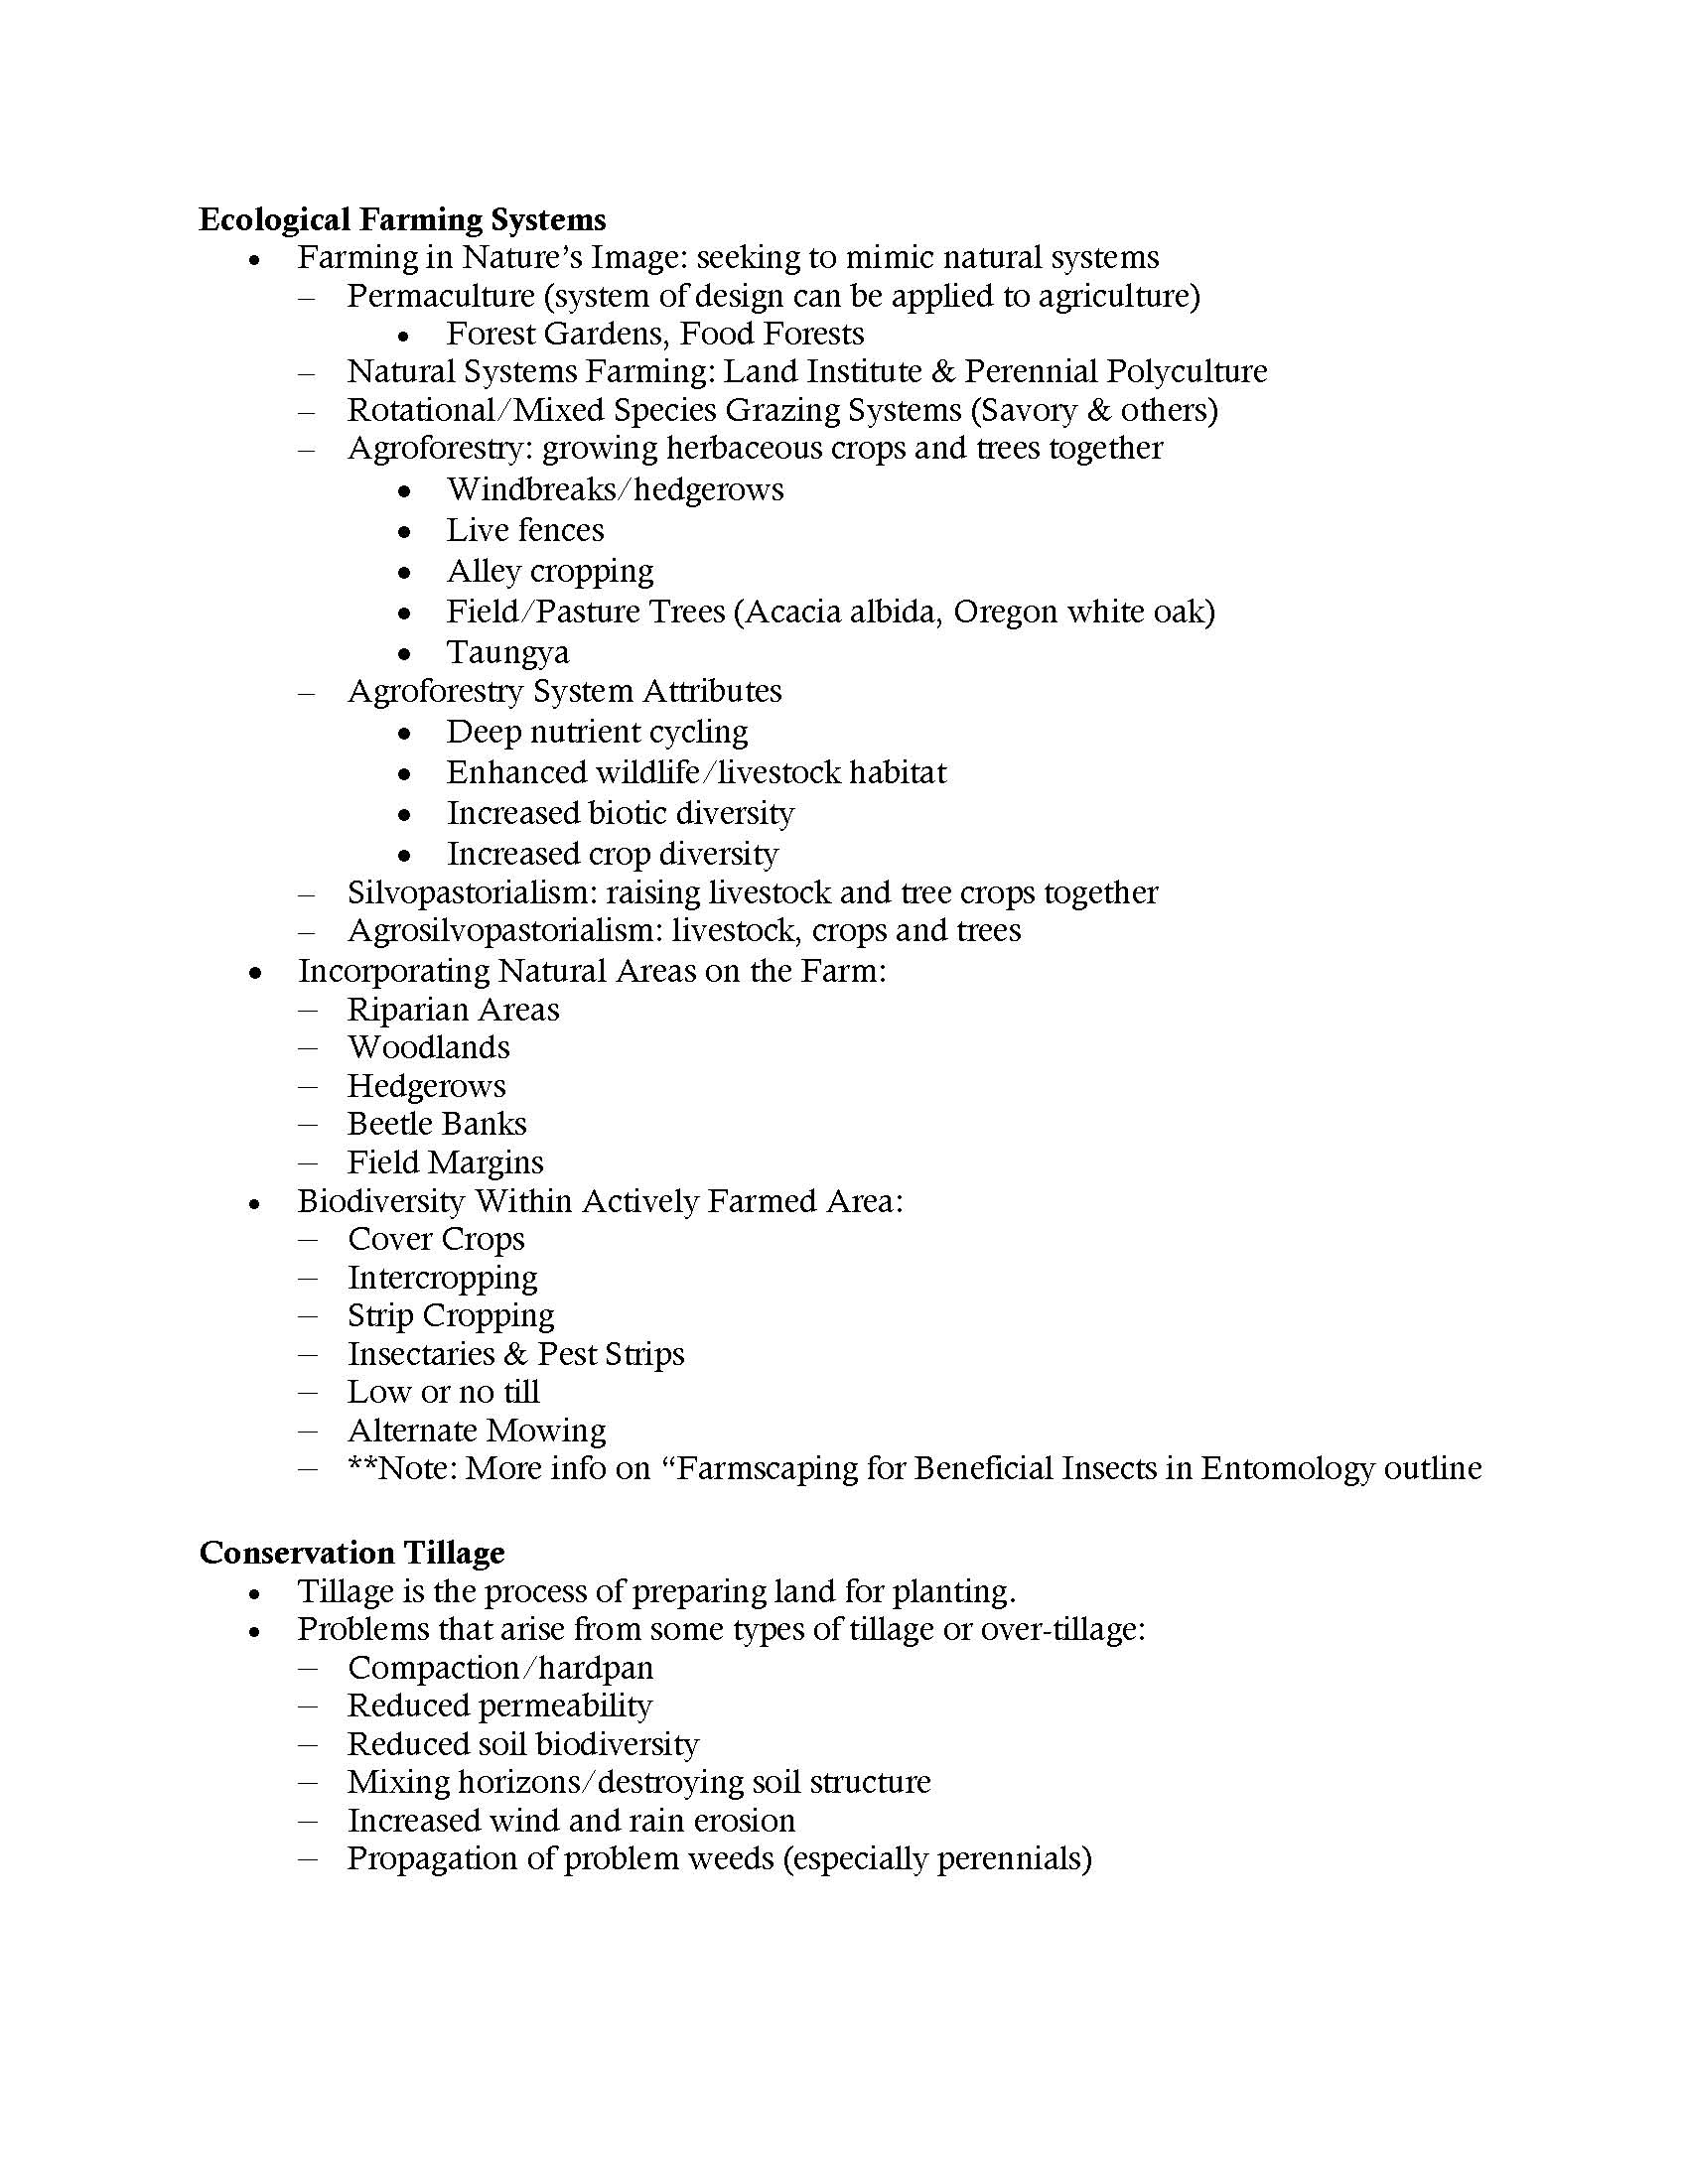 RFC Class Outlines_Page_19.jpg